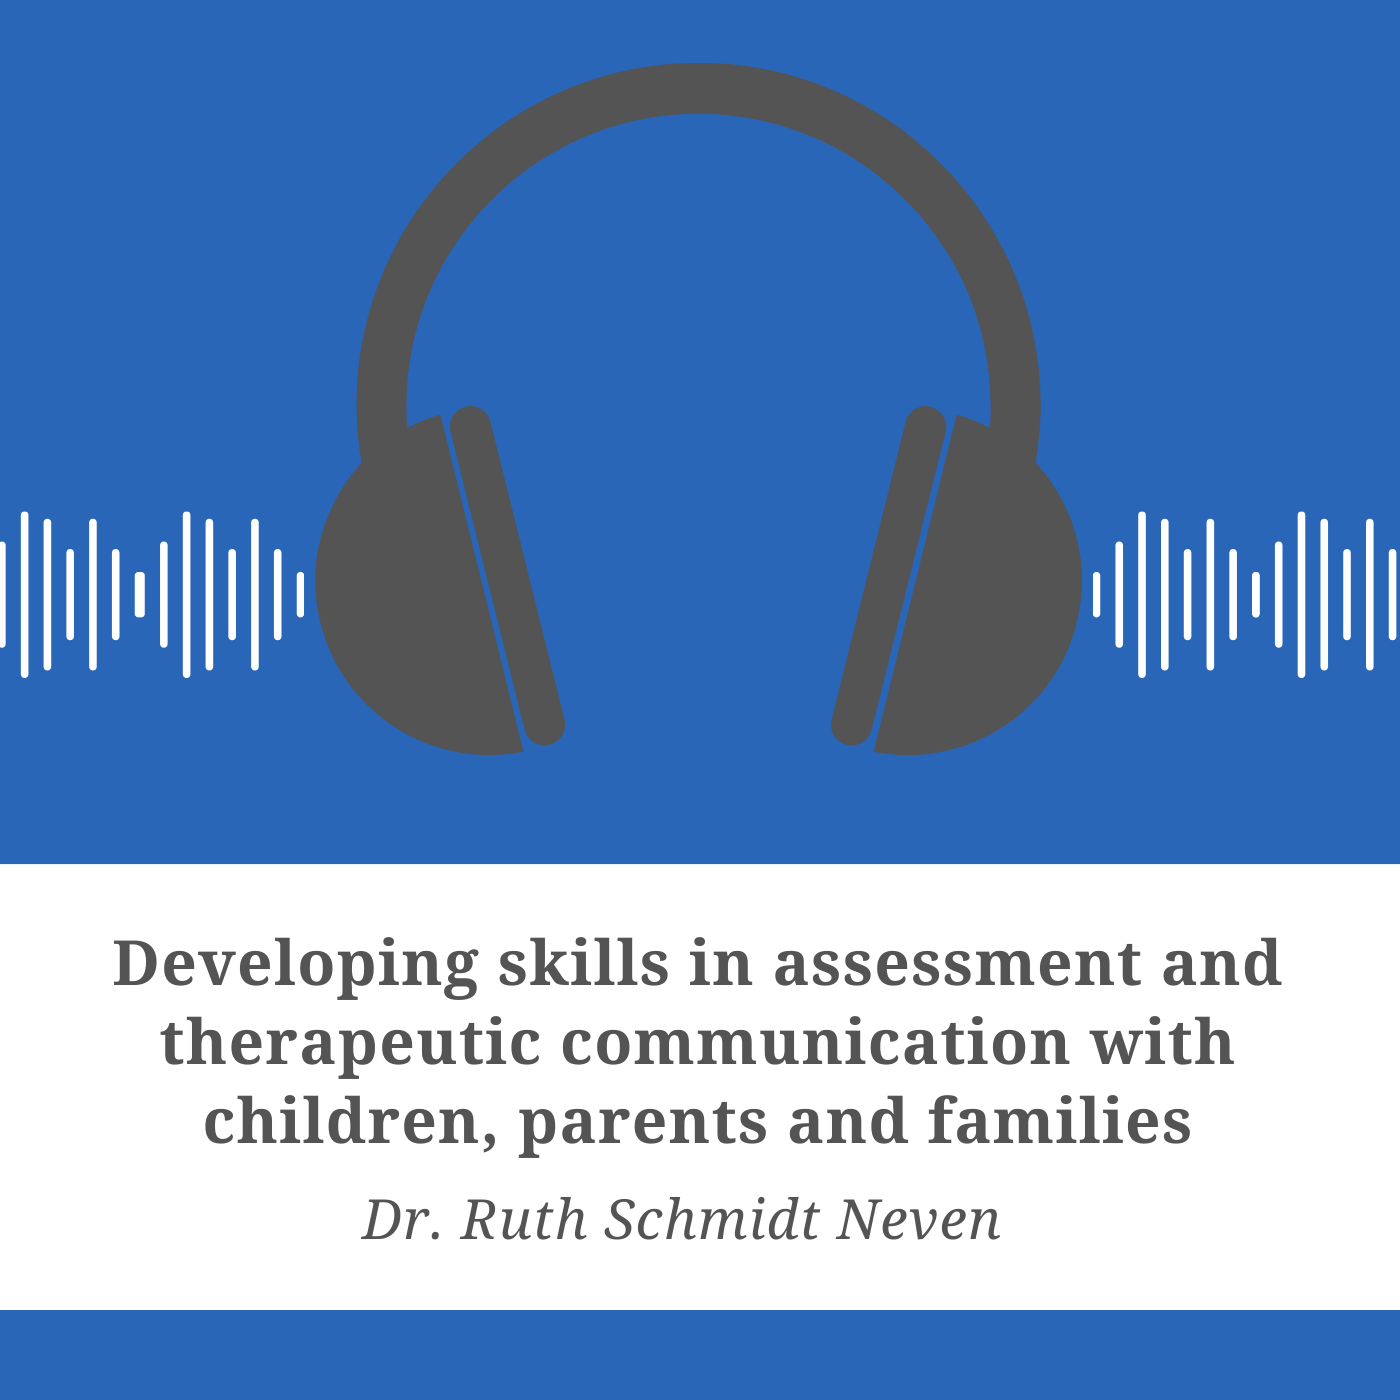 Developing Skills in Assessment and Therapeutic Communication with Children, Parents and Families